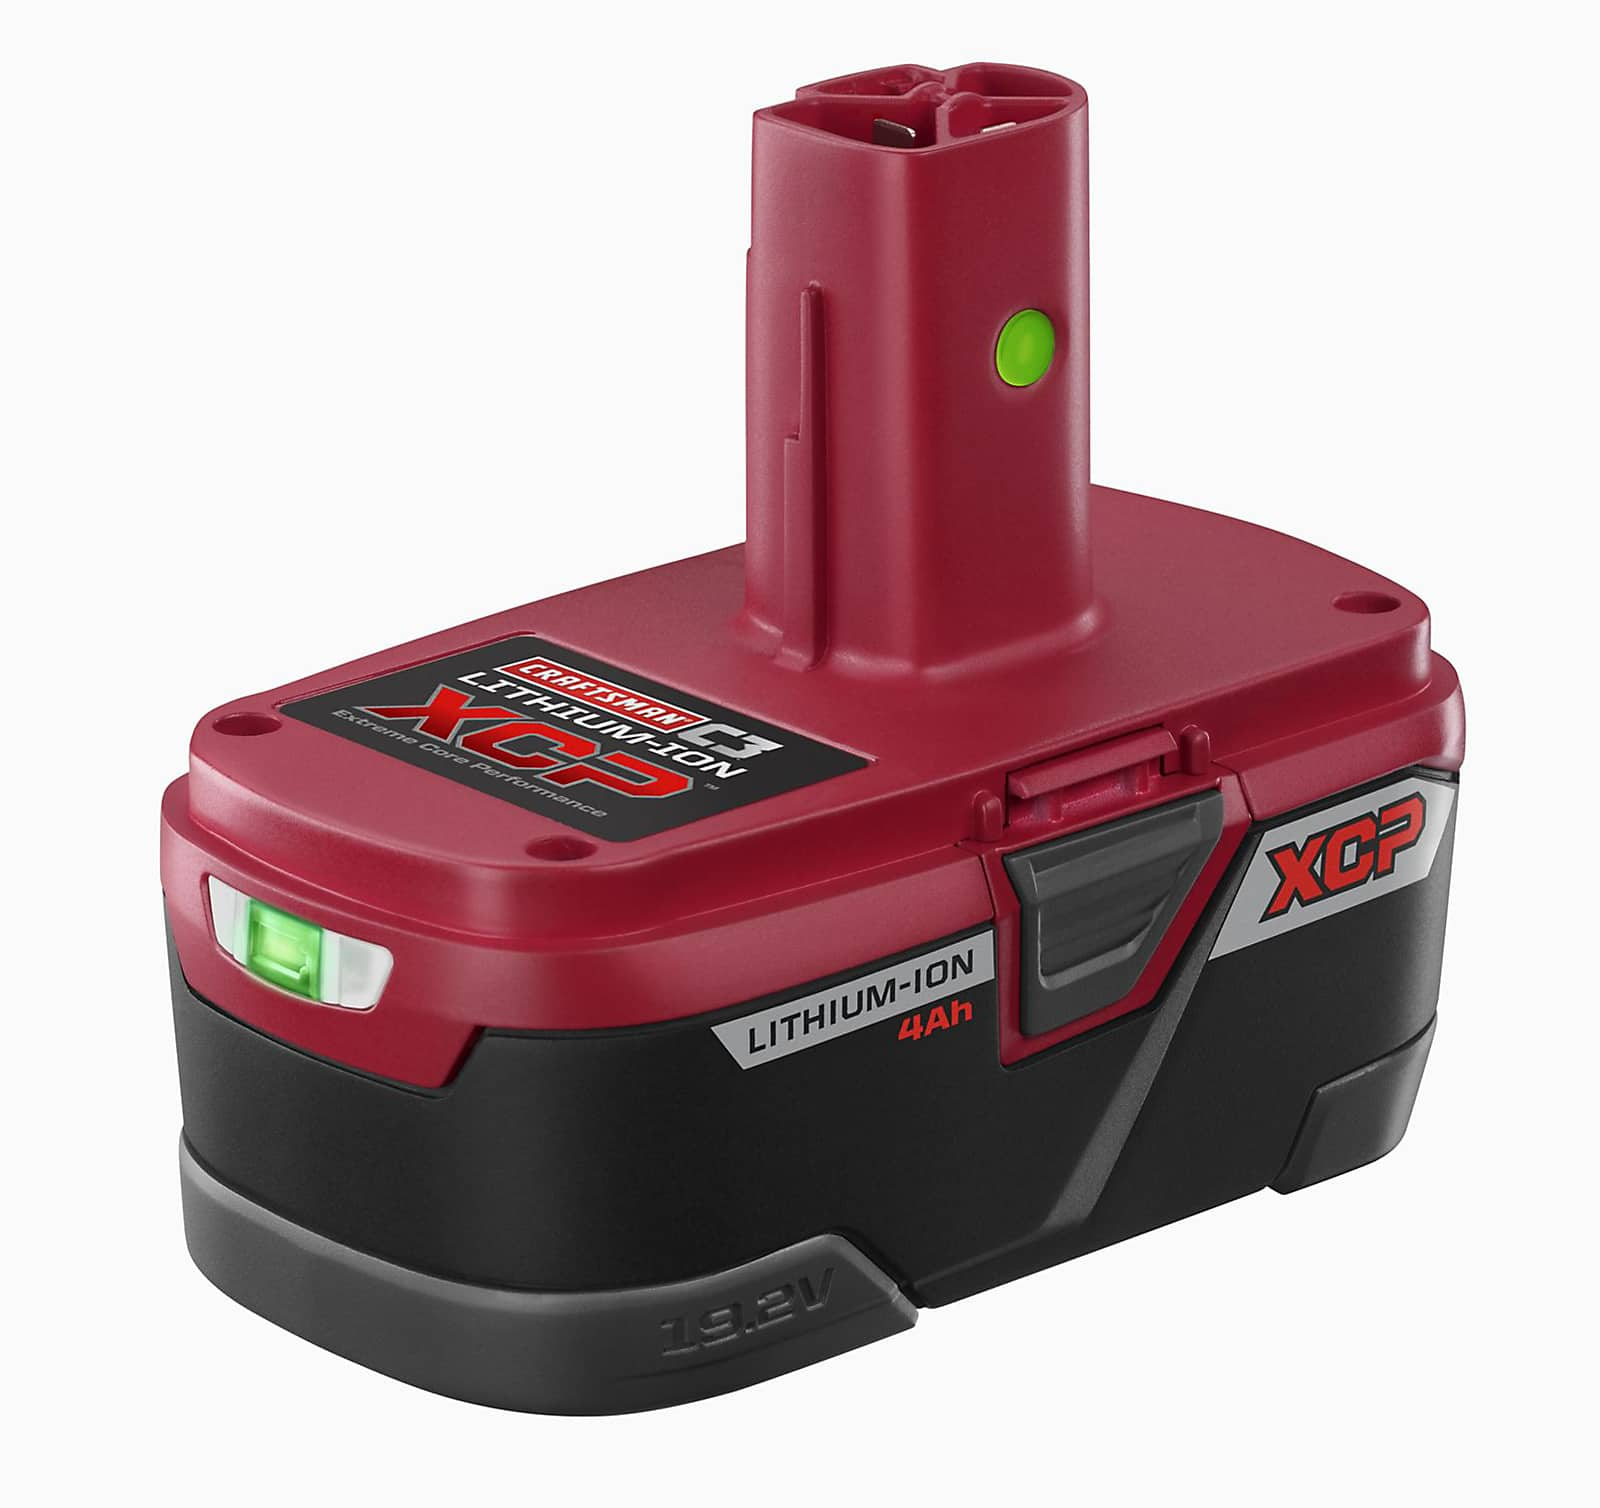 Sears Craftsman C3 19.2-Volt XCP High Capacity Lithium-Ion Battery Pack $90 $55 back in SYW points. FREE shipping. FREE store pick-up. Points do not roll.  Price has been better bu